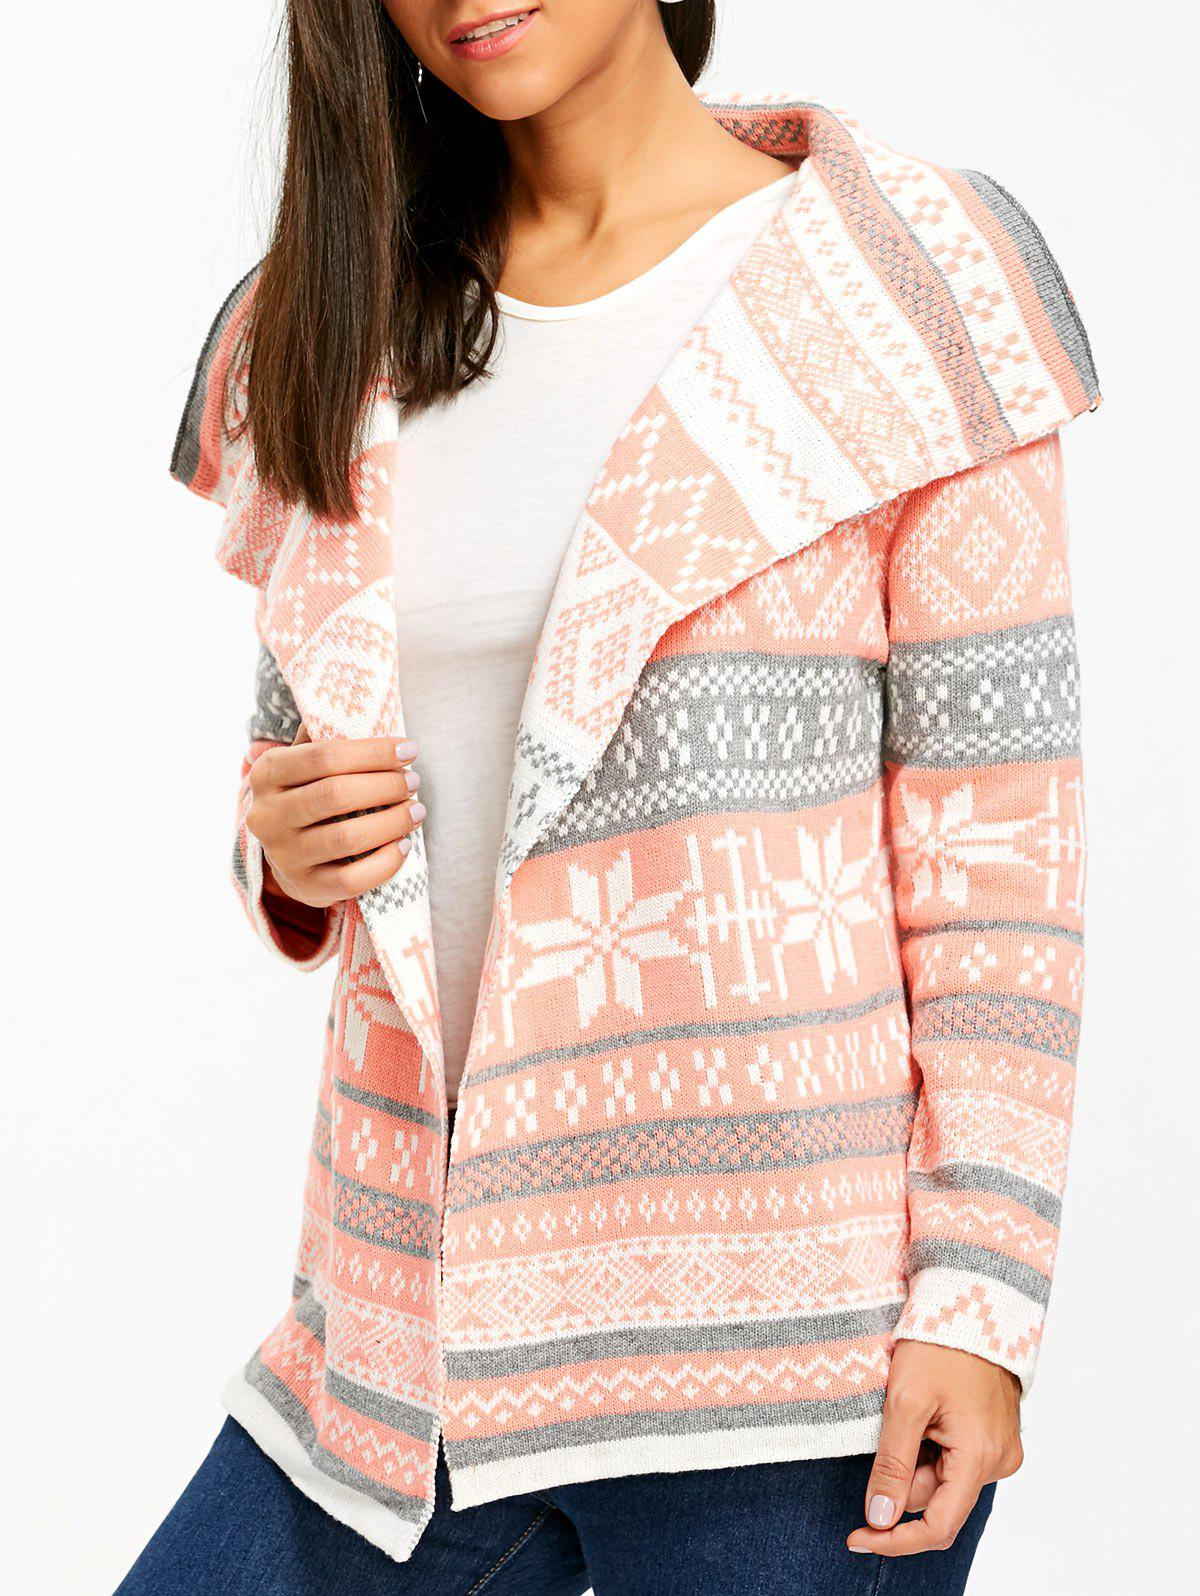 Stylish Turn-Down Collar Long Sleeve Printed Pocket Design Womens CardiganWOMEN<br><br>Size: XL; Color: PINK; Type: Cardigans; Material: Acrylic; Sleeve Length: Full; Collar: Turn-down Collar; Style: Fashion; Weight: 0.241kg; Package Contents: 1 x Cardigan;